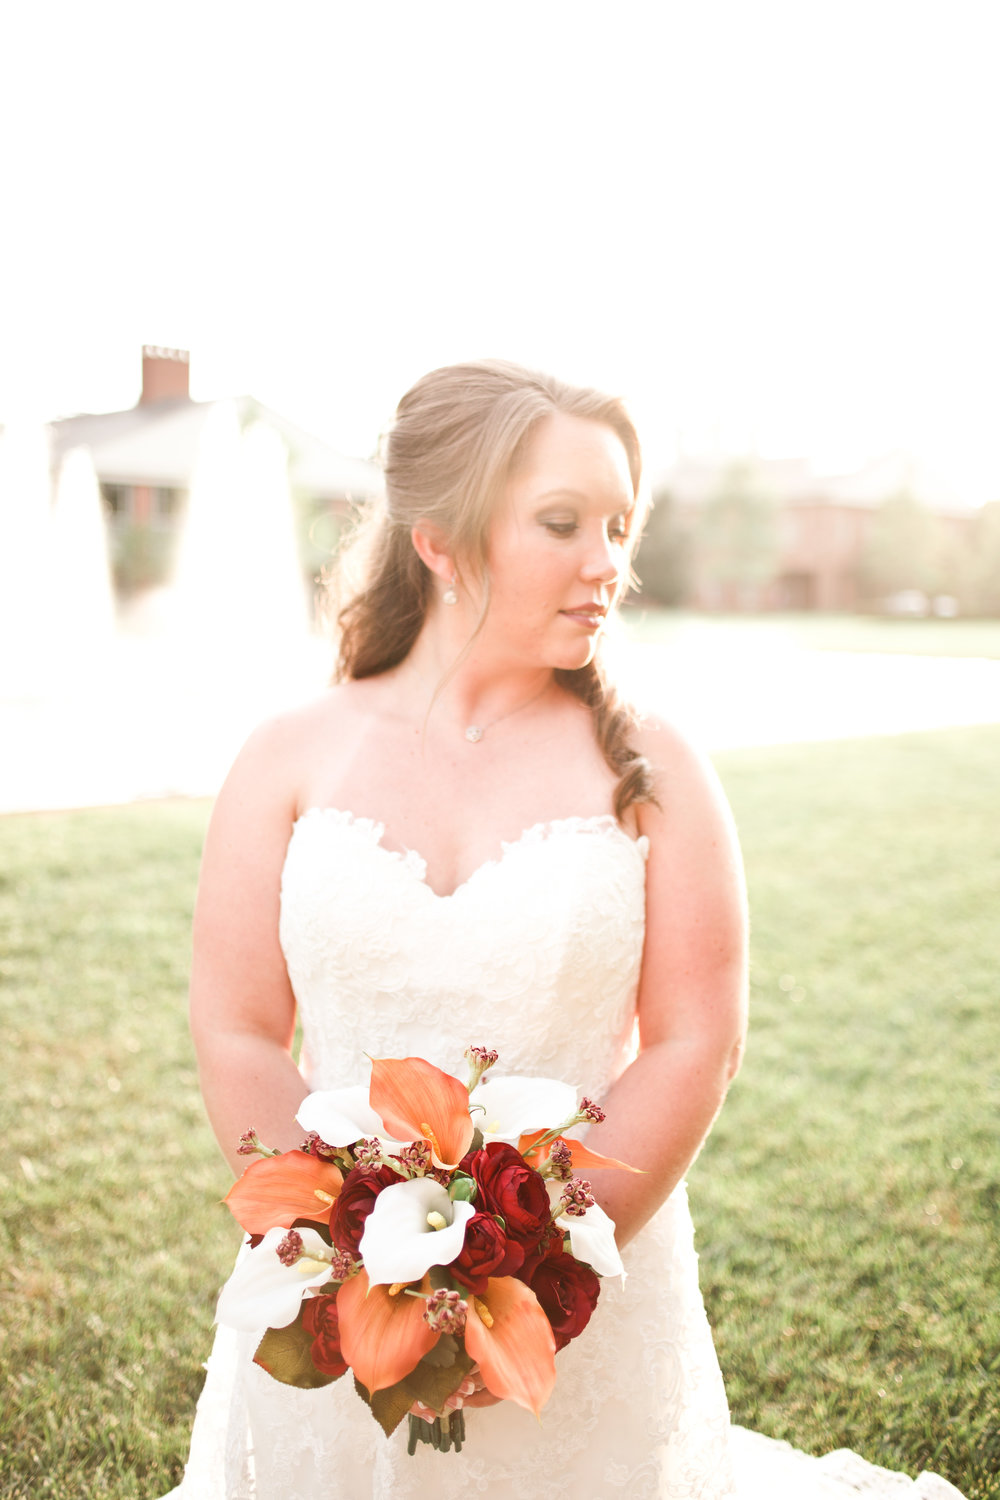 gabbie_bridal_poured_out_photography-65.jpg